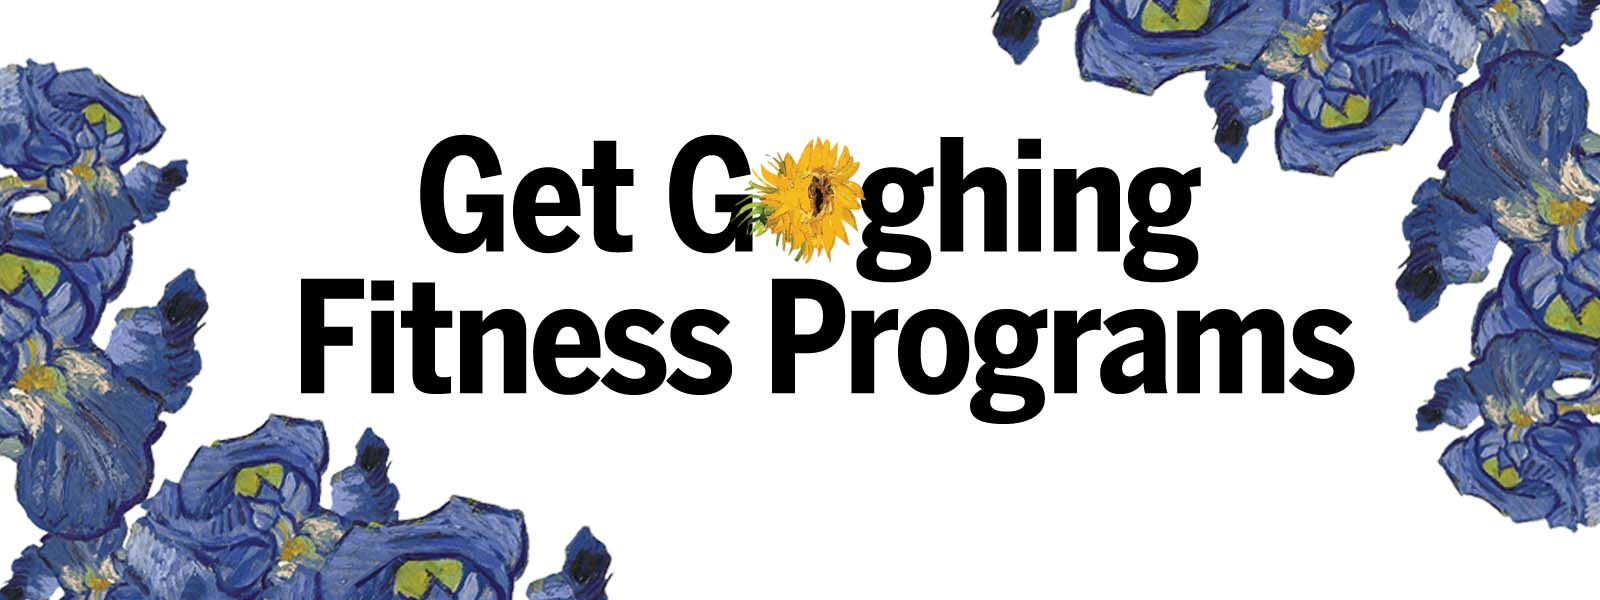 Get Goghing Fitness Programs